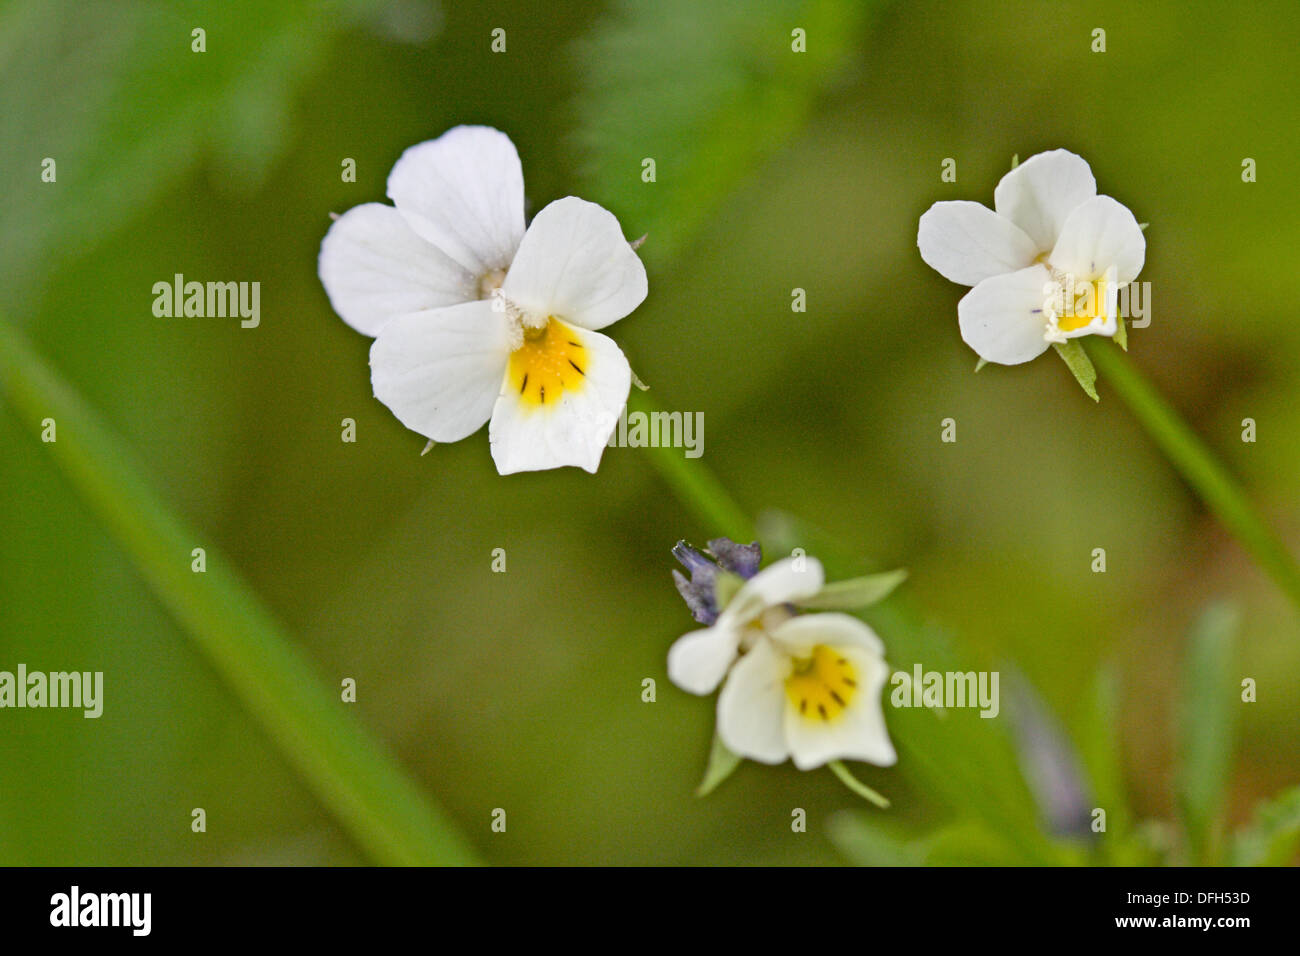 Attractive White Flower With A Yellow Center Image Best Evening